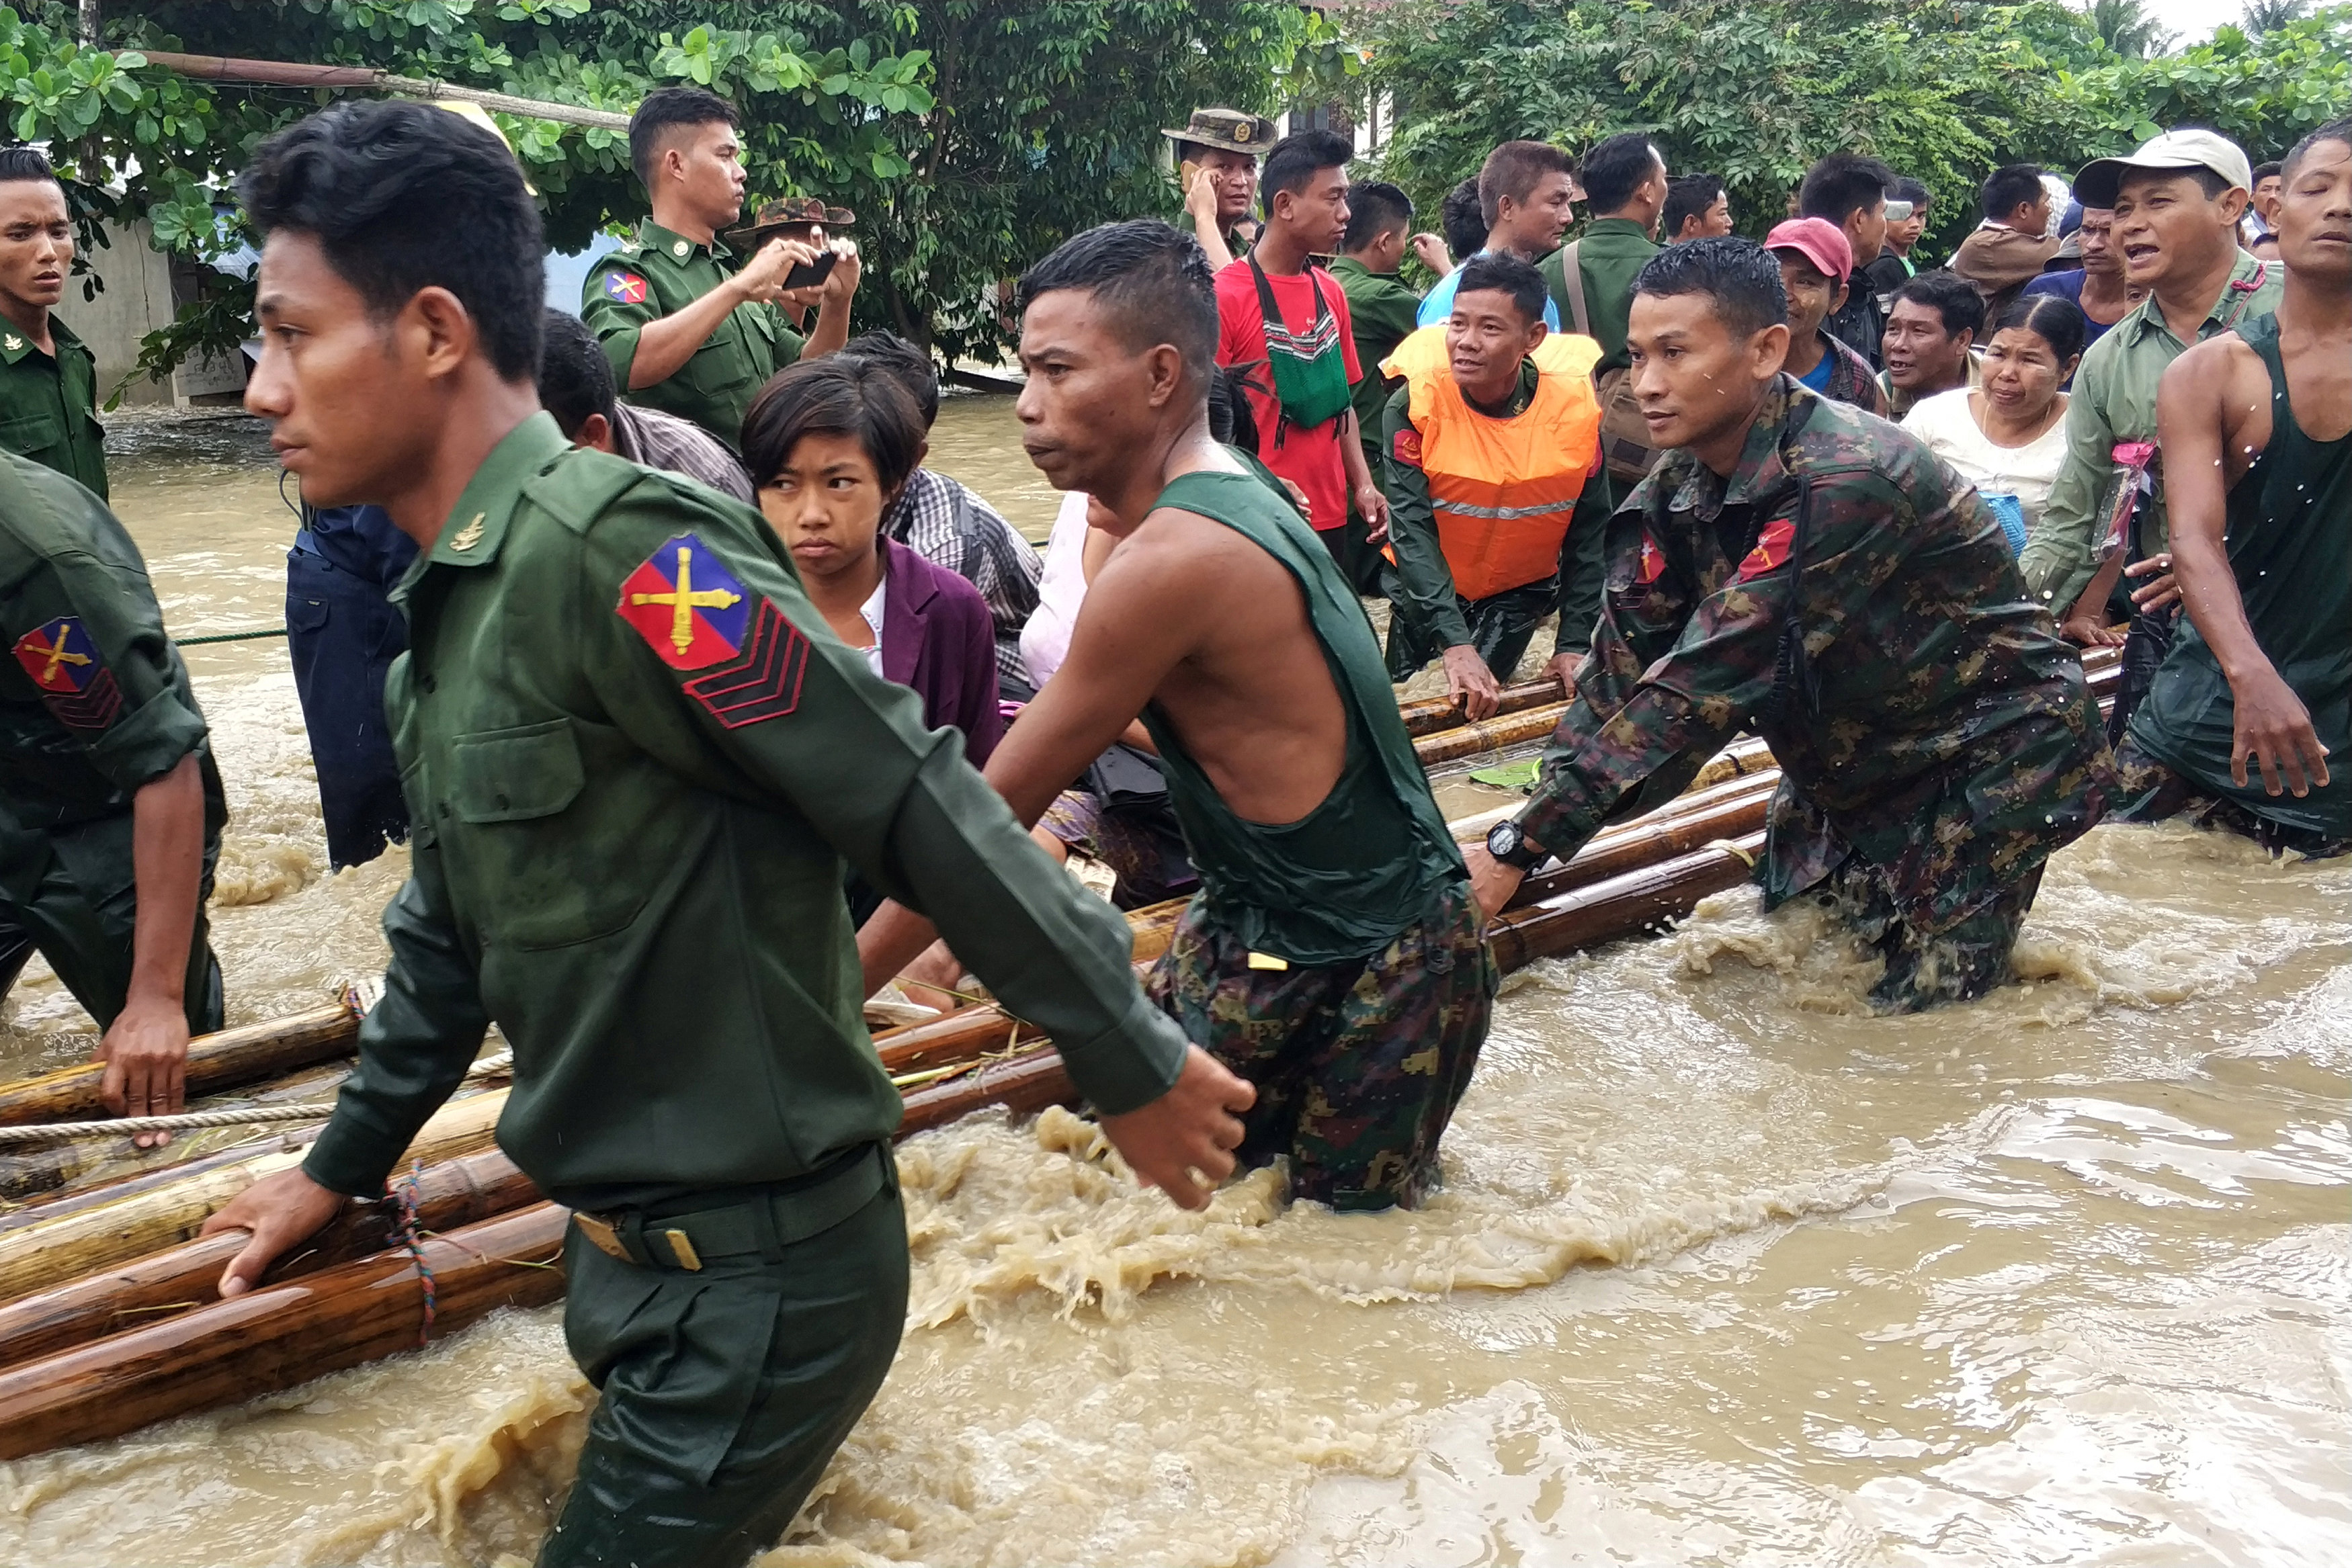 People are evacuated by Myanmar soldiers after flooding in Swar township, Myanmar August 29, 2018. REUTERS/Stringer